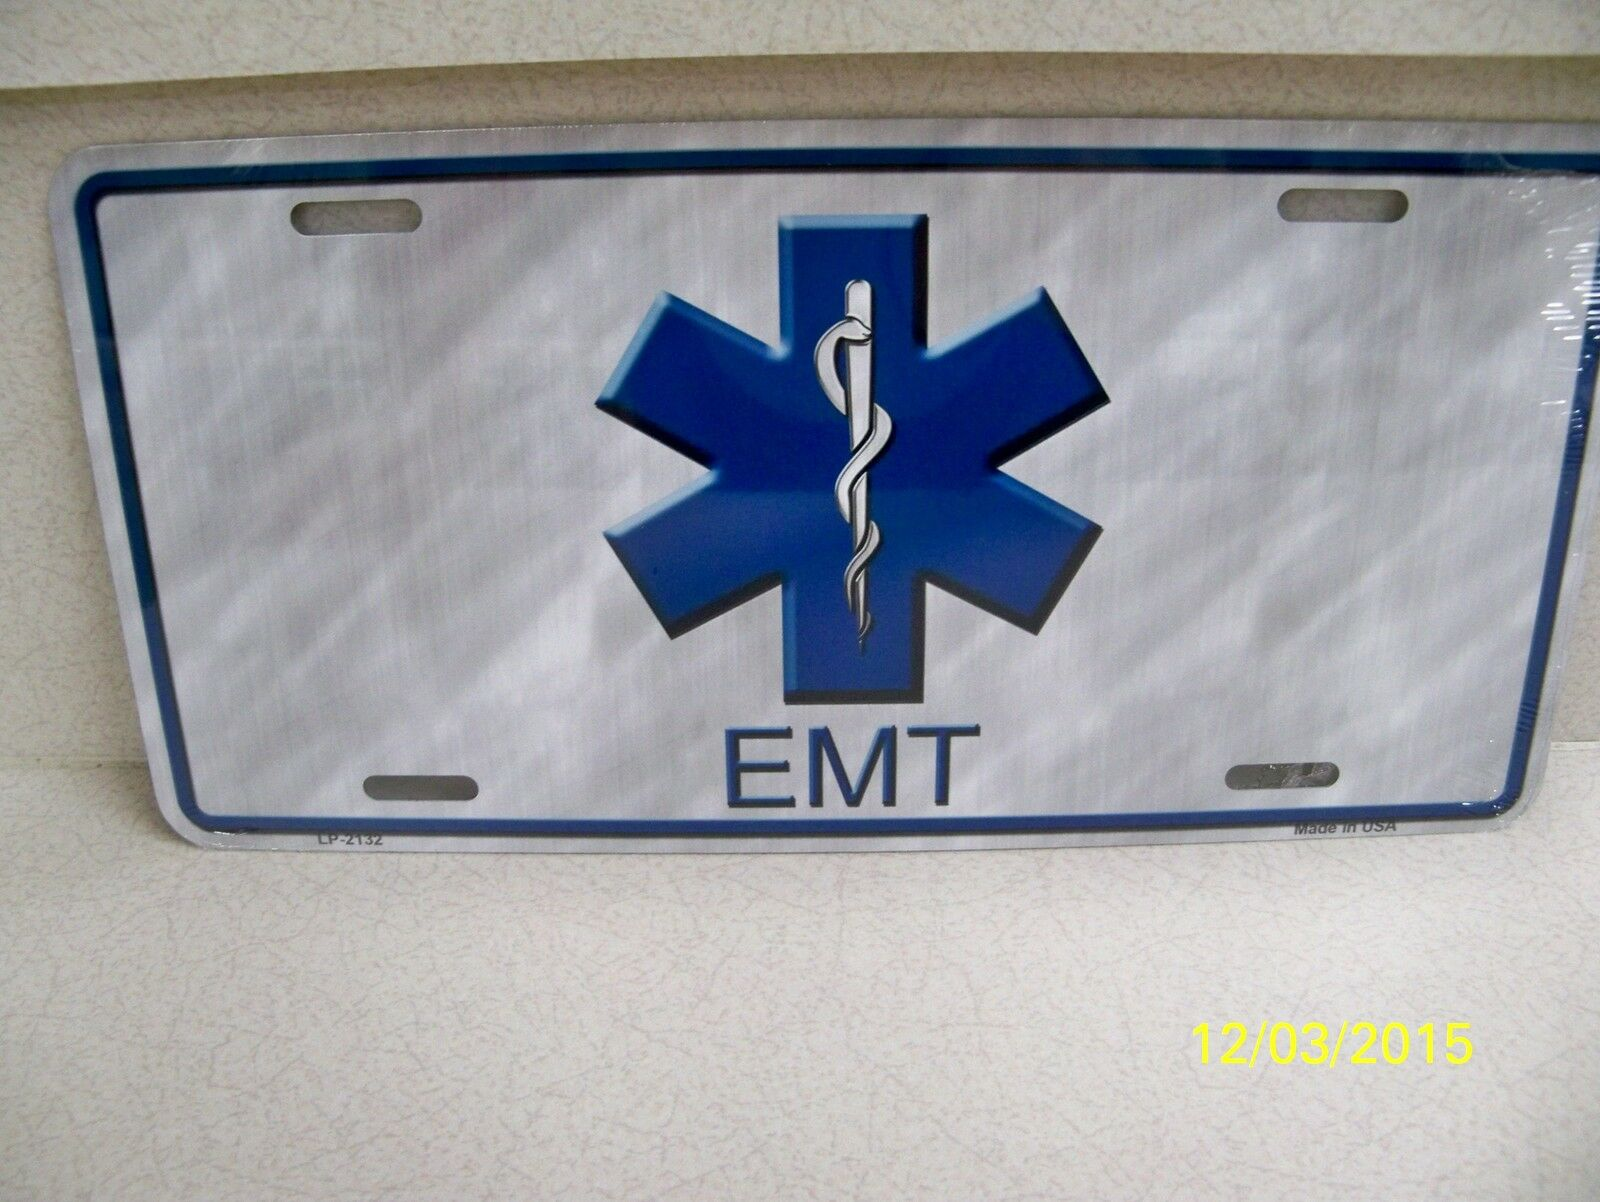 Emt emergency medical technician license plate ebay picture 1 of 4 xflitez Choice Image